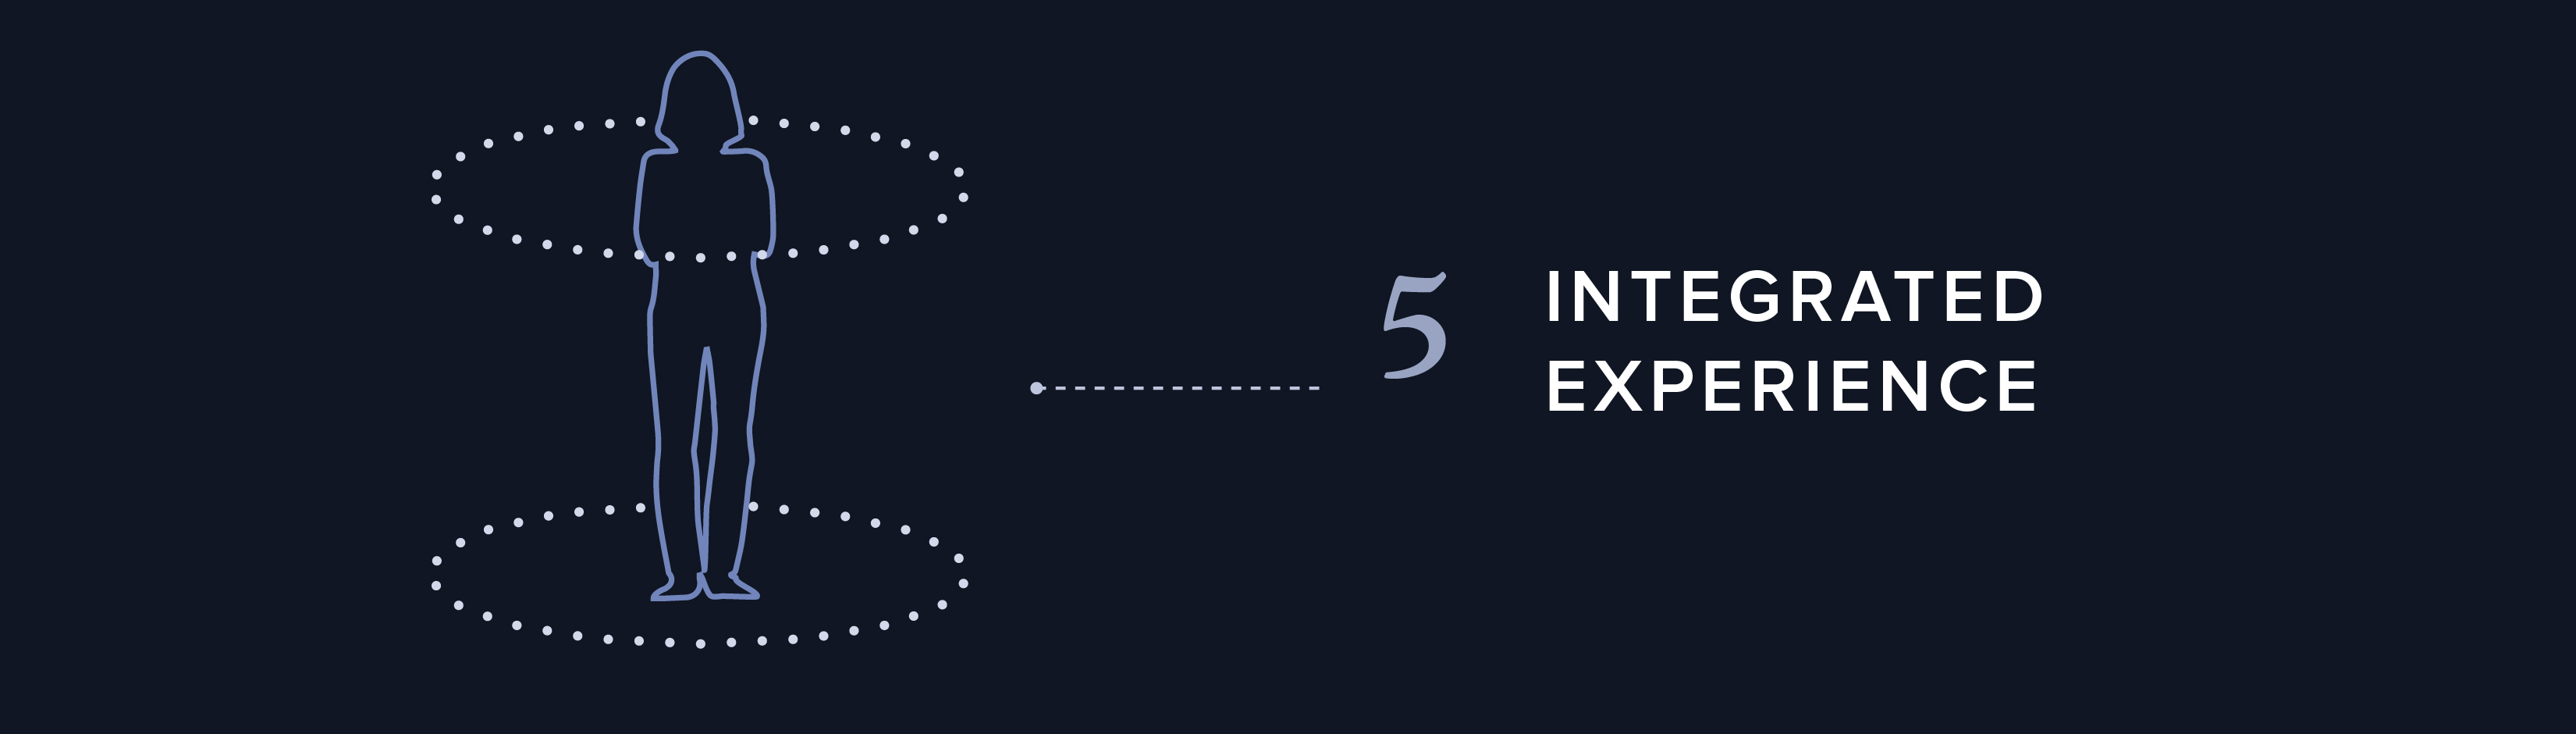 Integrated_Experience